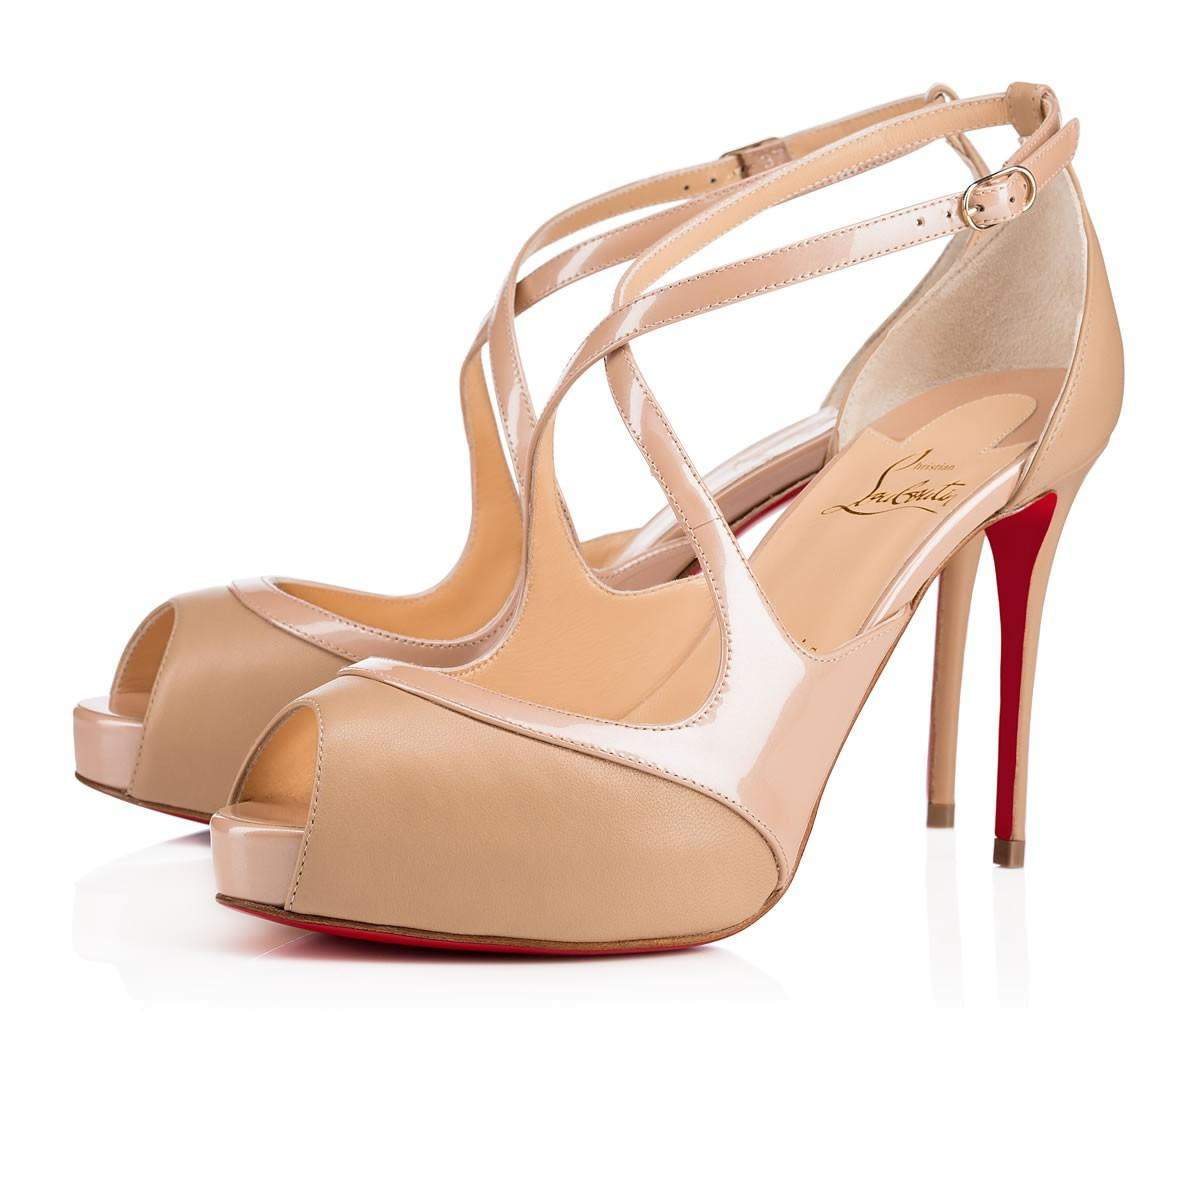 0d26dd66910 Christian Louboutin Catchy Two 120 Patent Leather Peep Toe Pumps In Nude  1 Nude